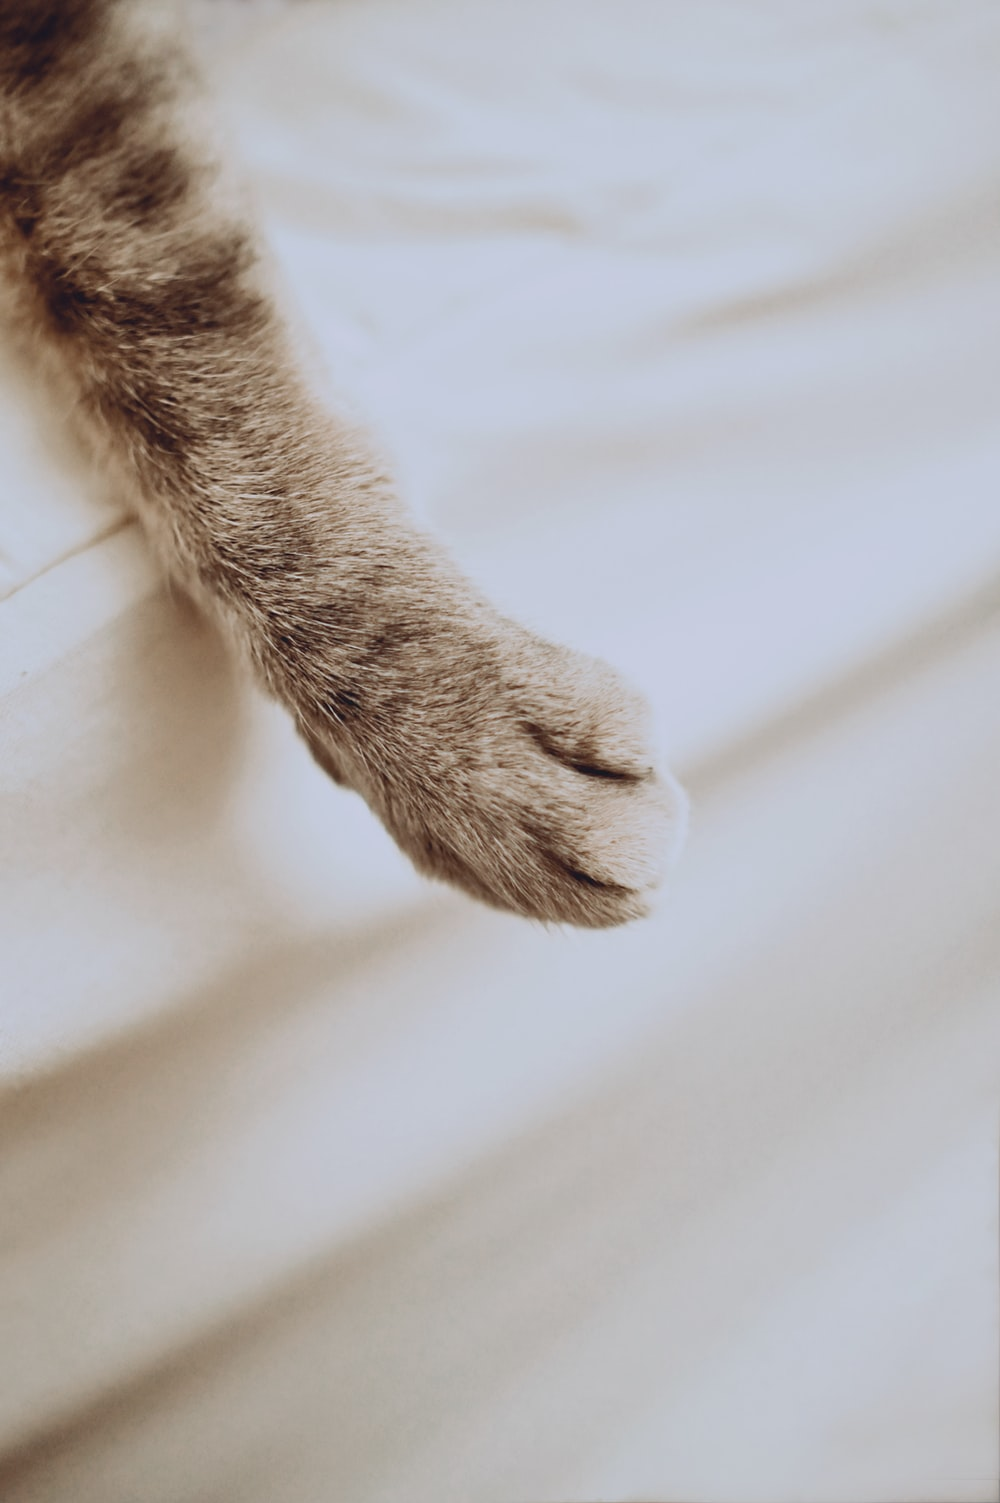 brown cat paw on white textile